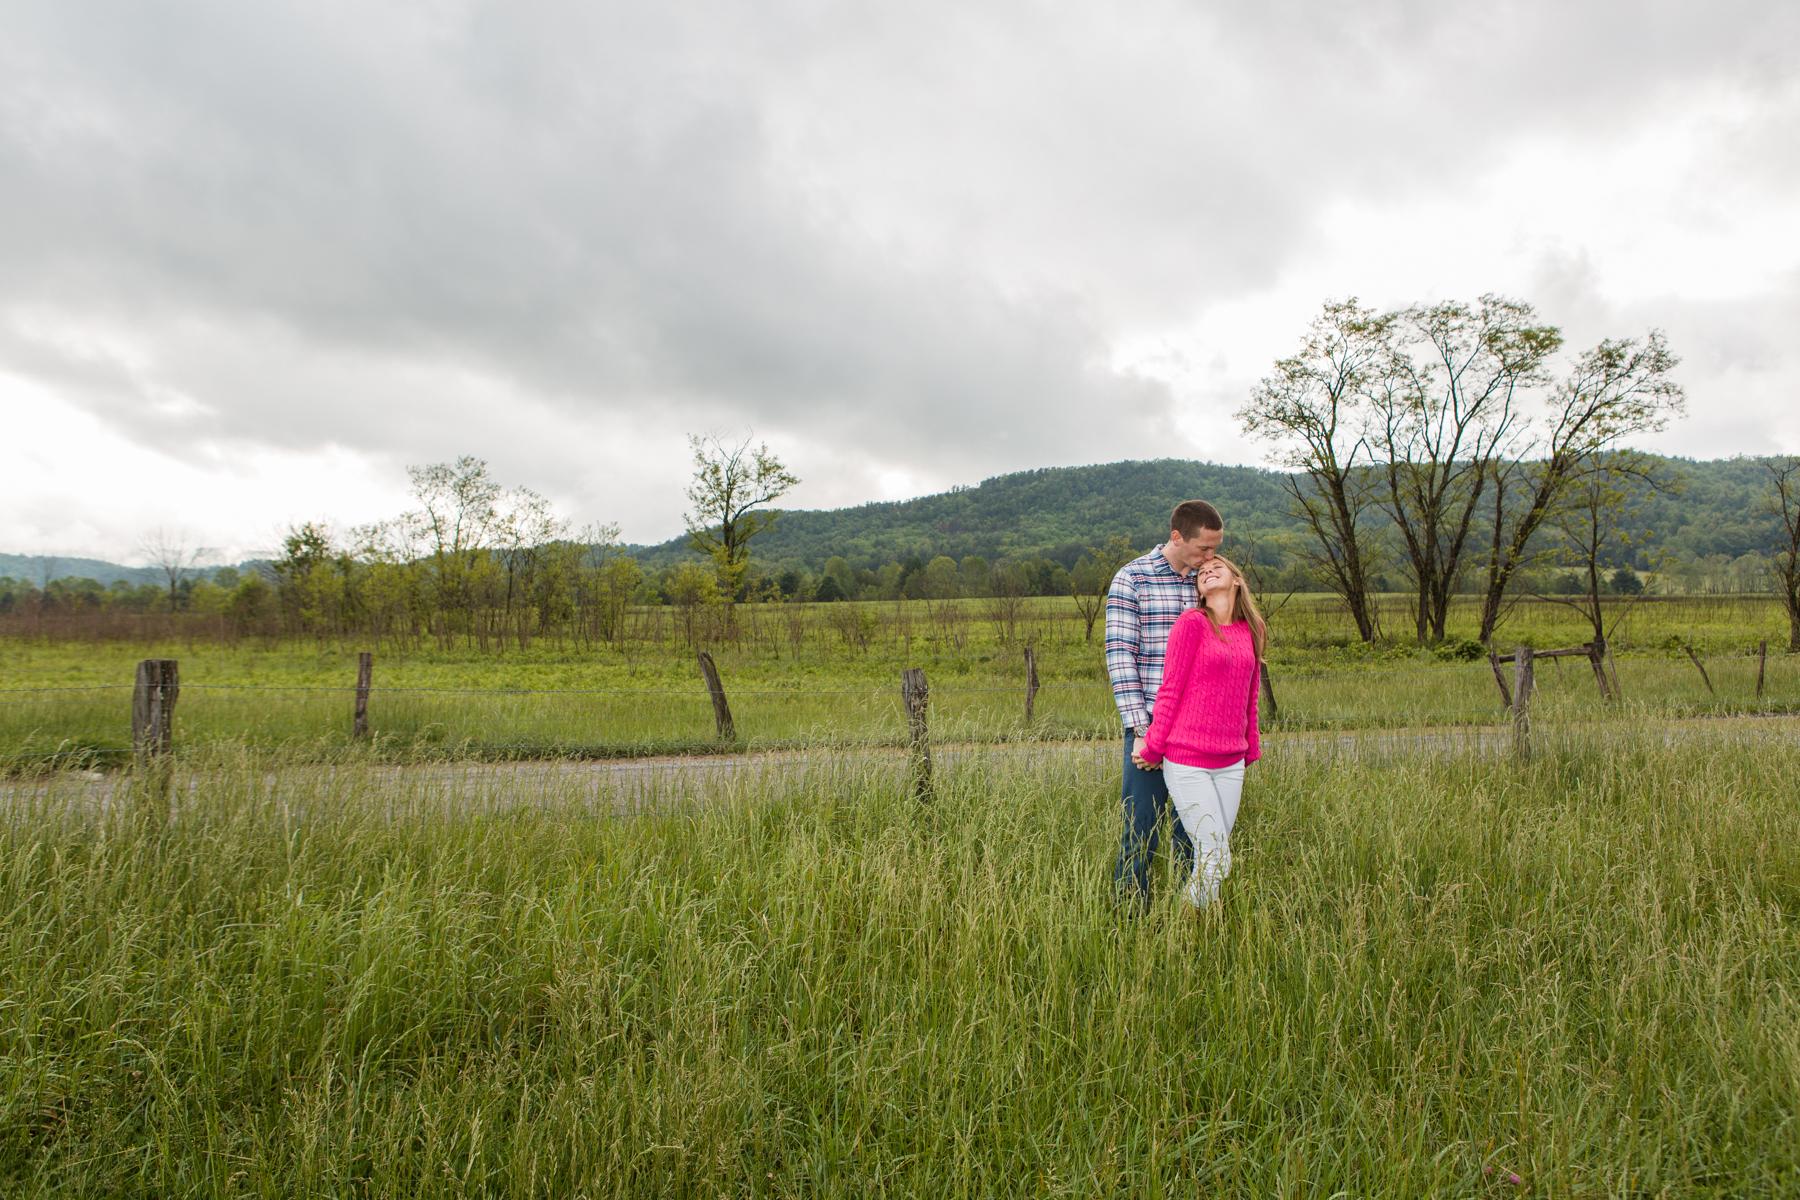 Cades-Cove-marriage-proposal-10